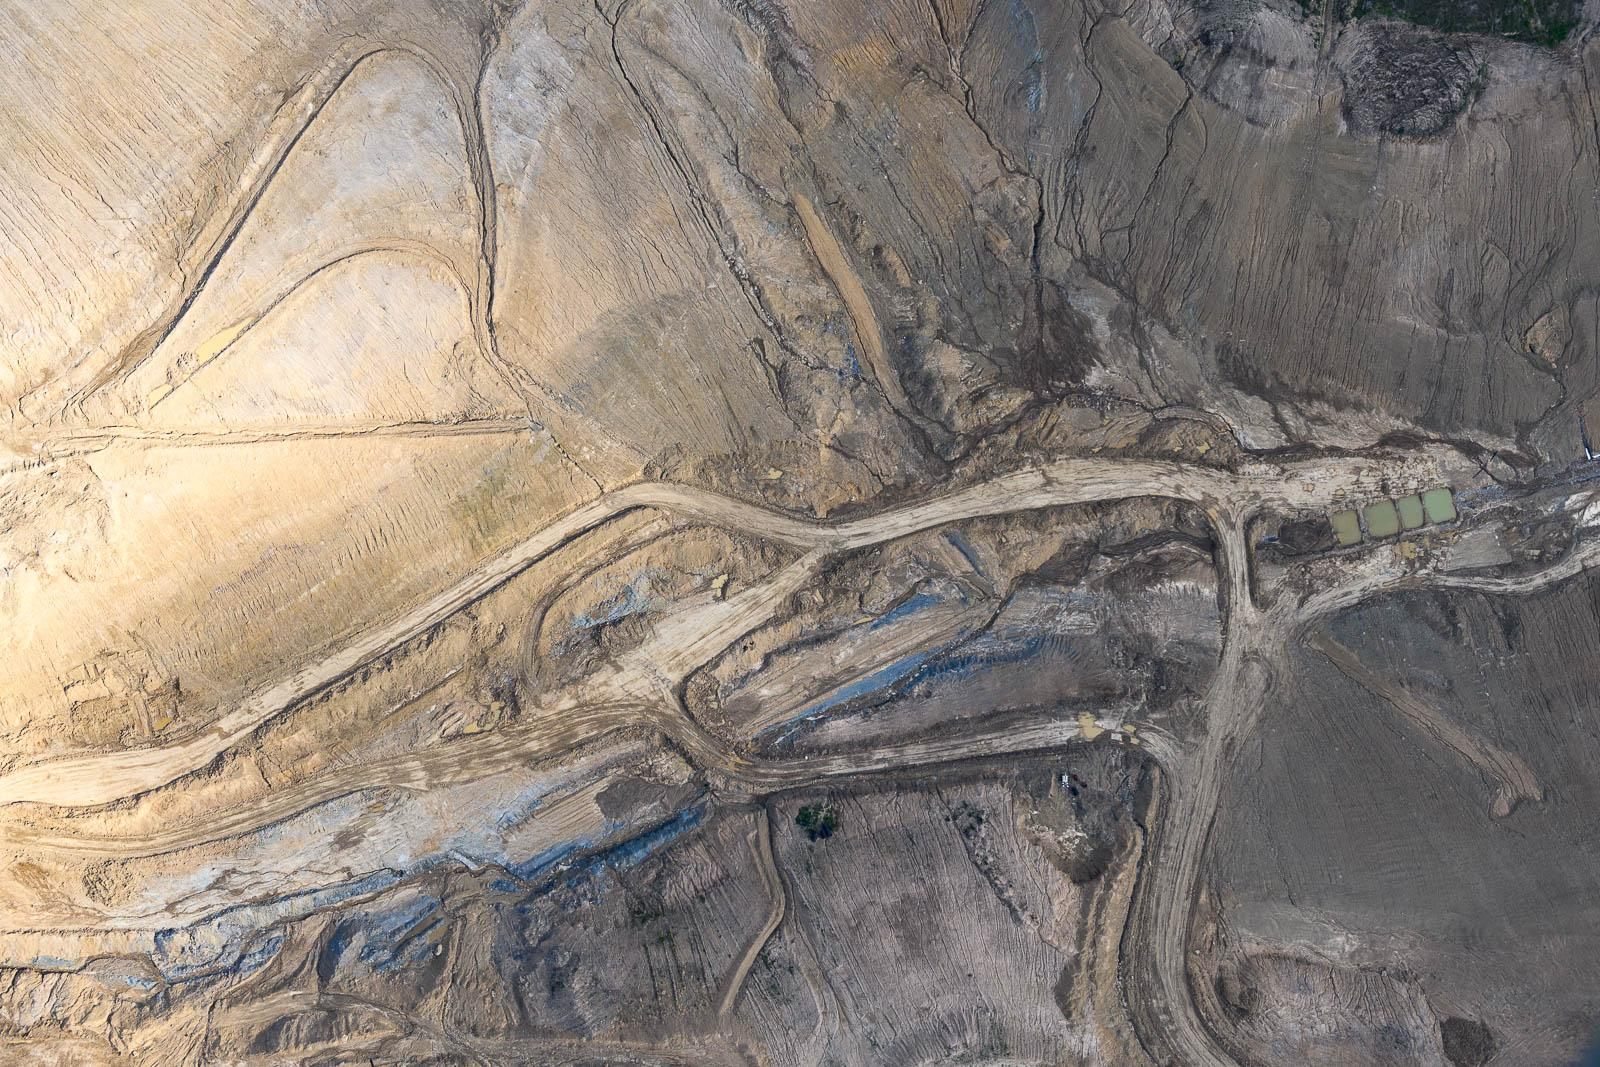 The excavation of coal